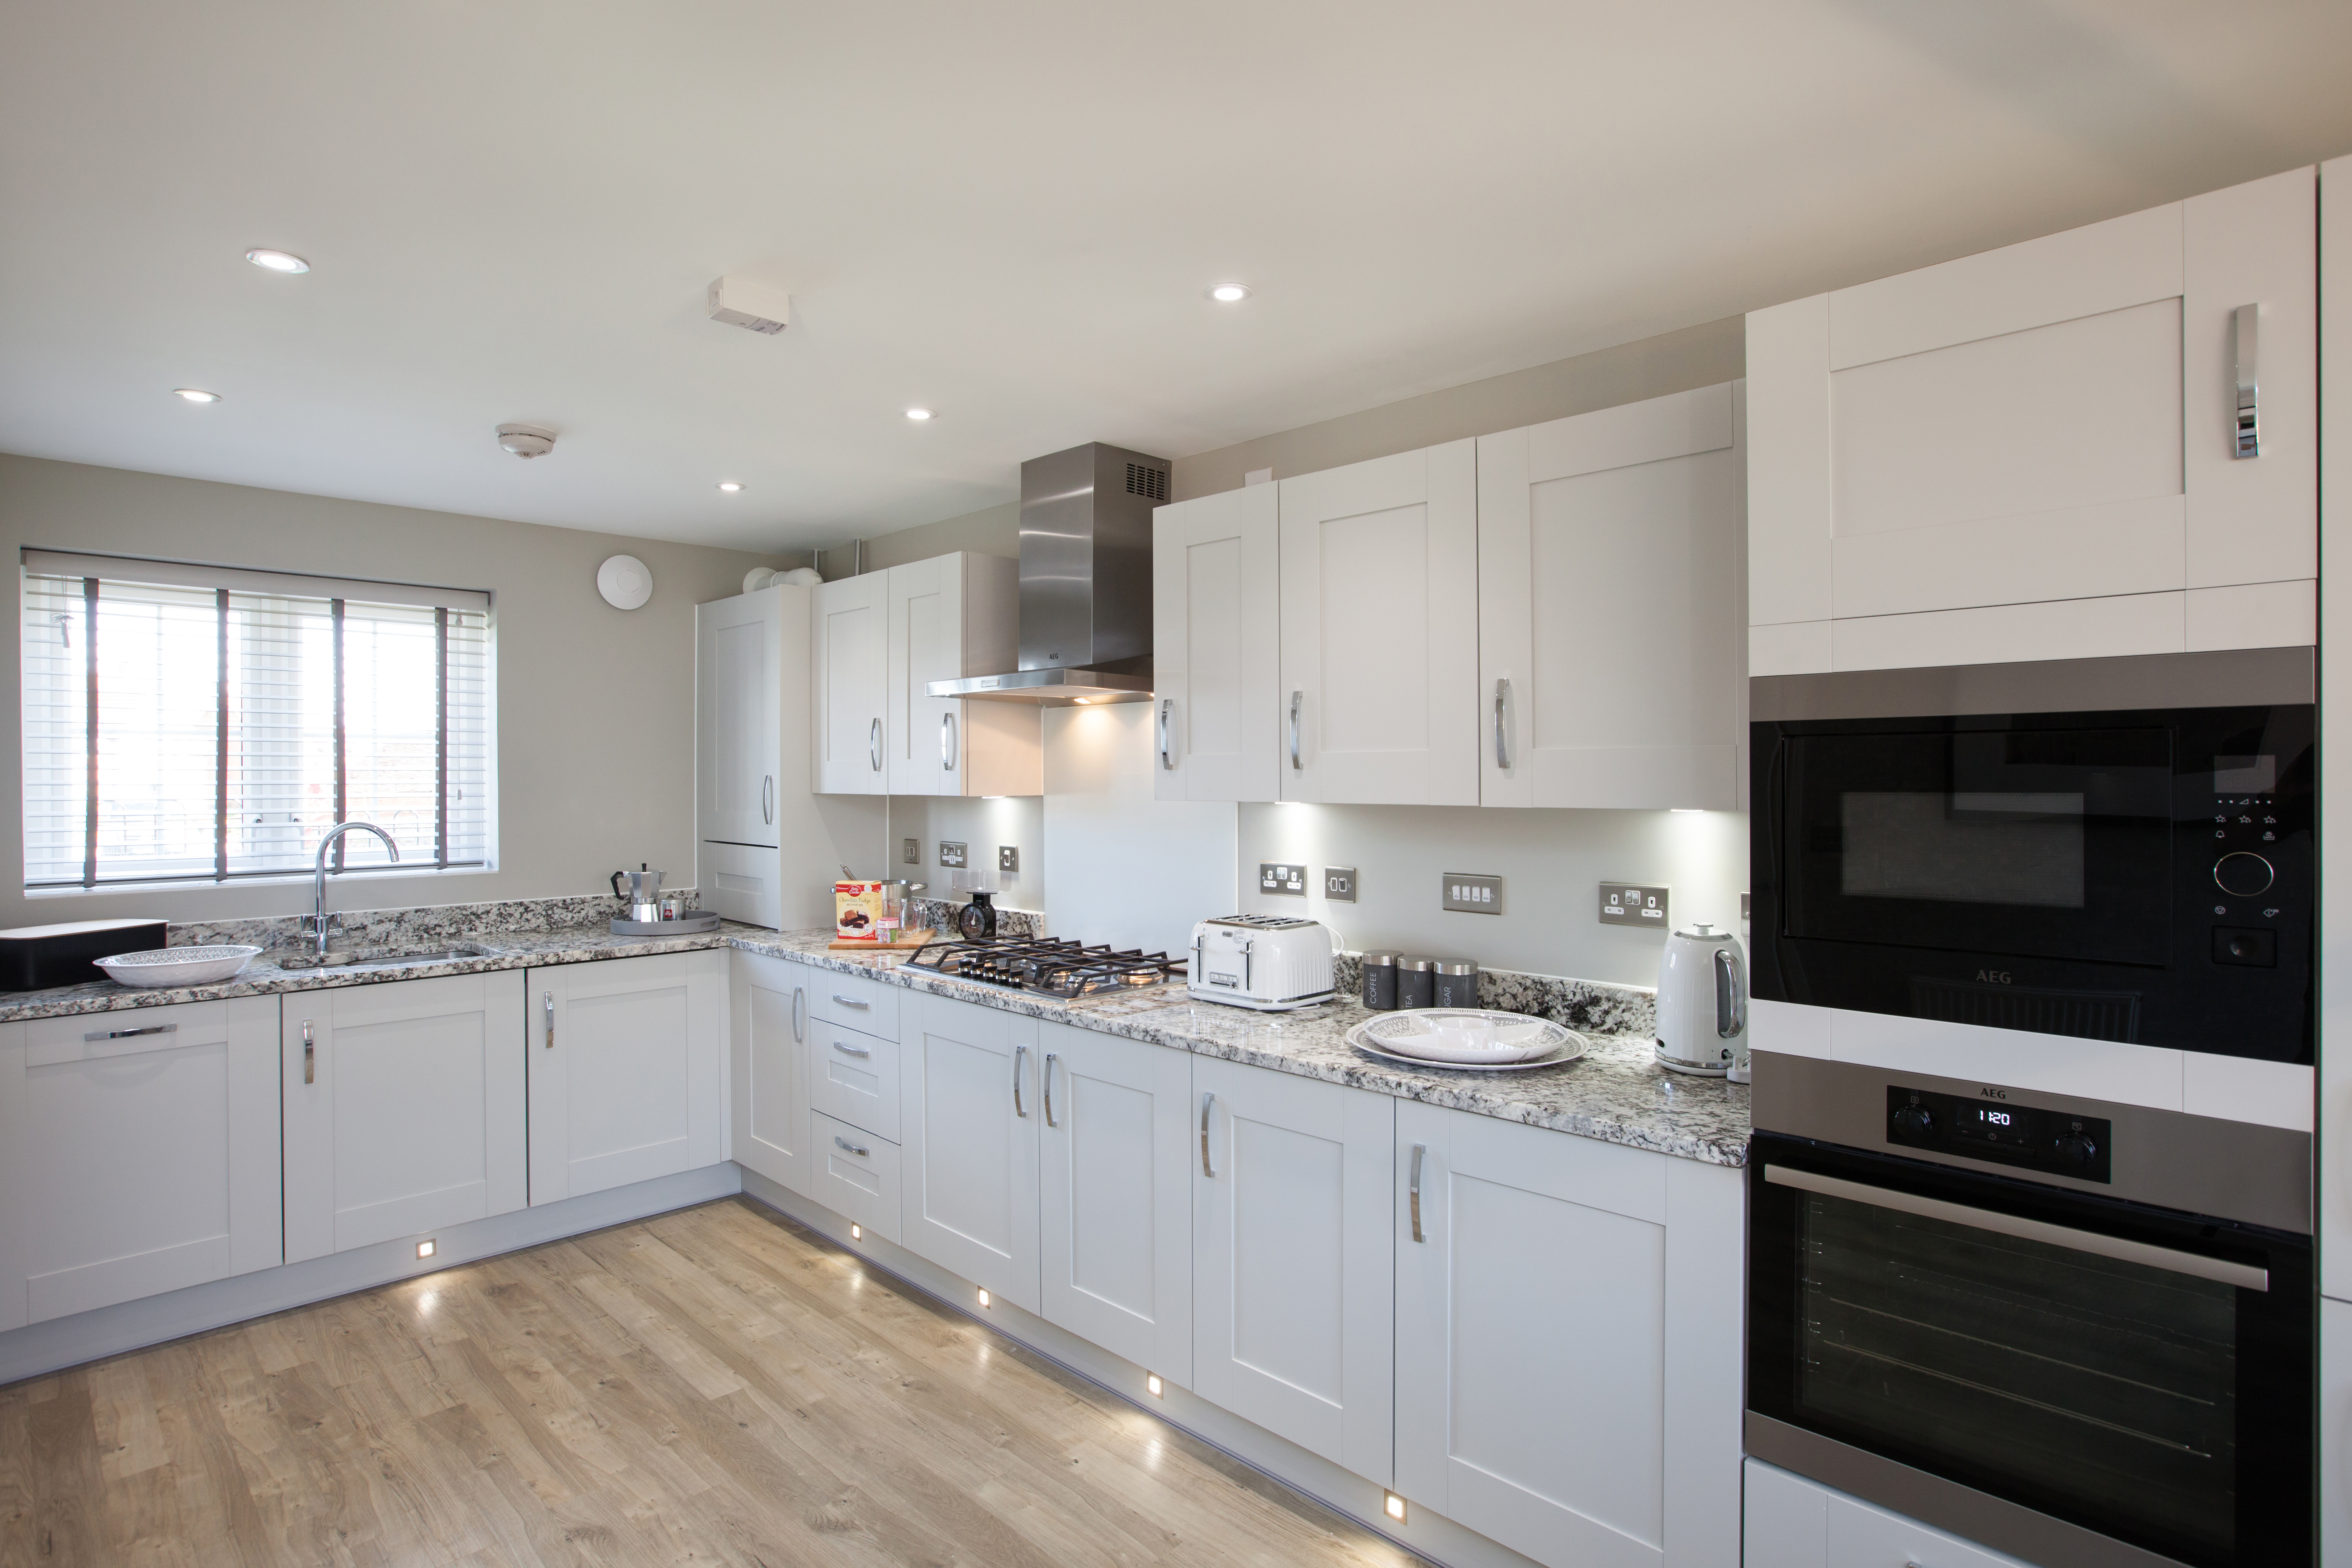 How to choose your perfect kitchen worktop | Taylor Wimpey